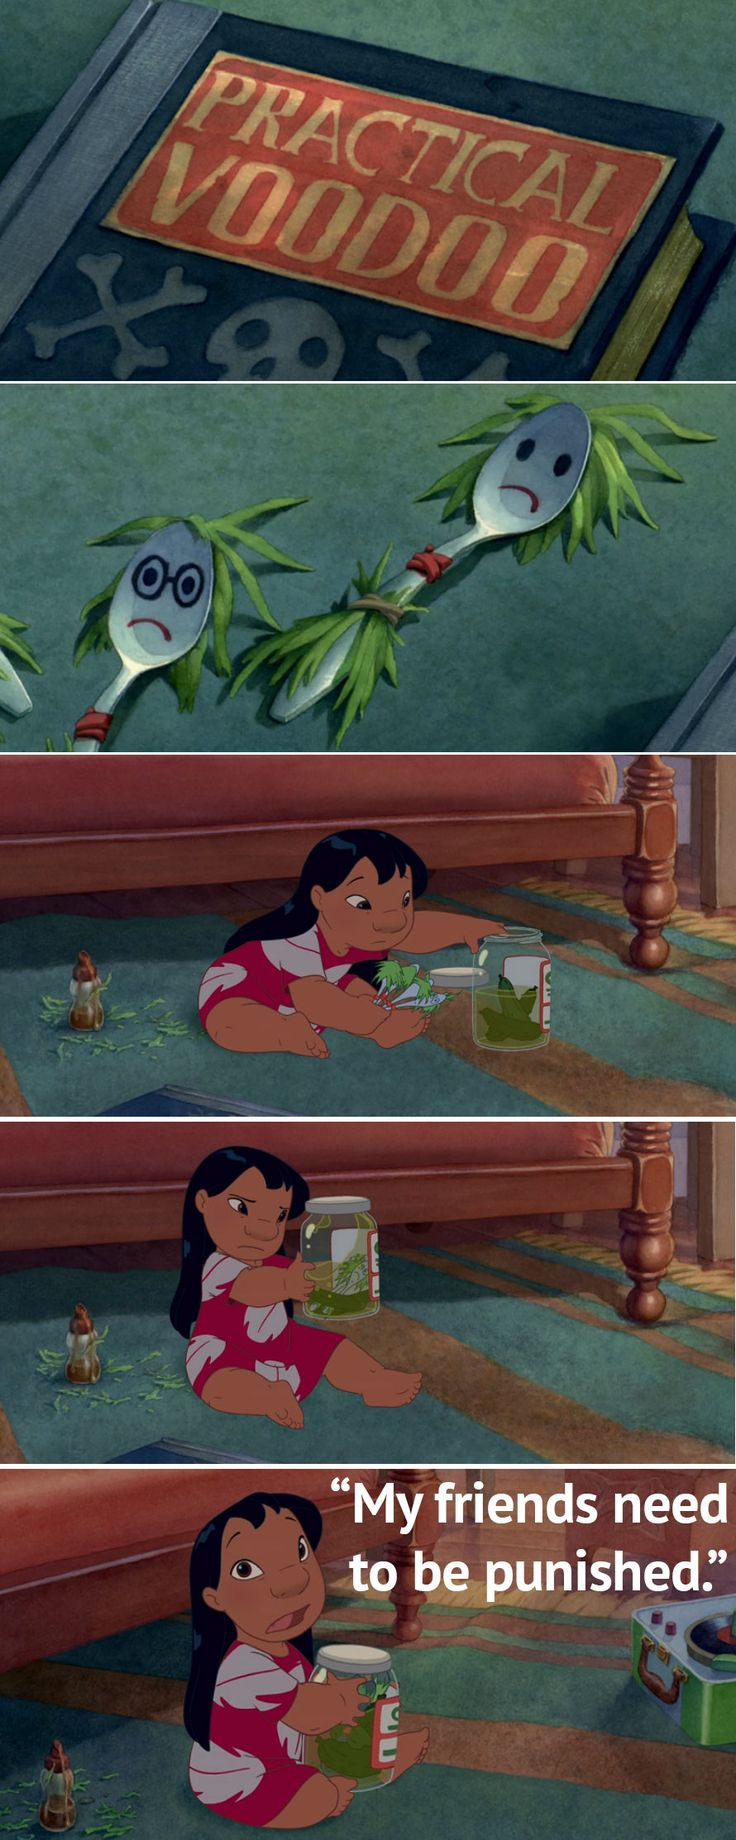 Just watched Lilo and Stitch for the first time and was losing it over Lilo's quotes